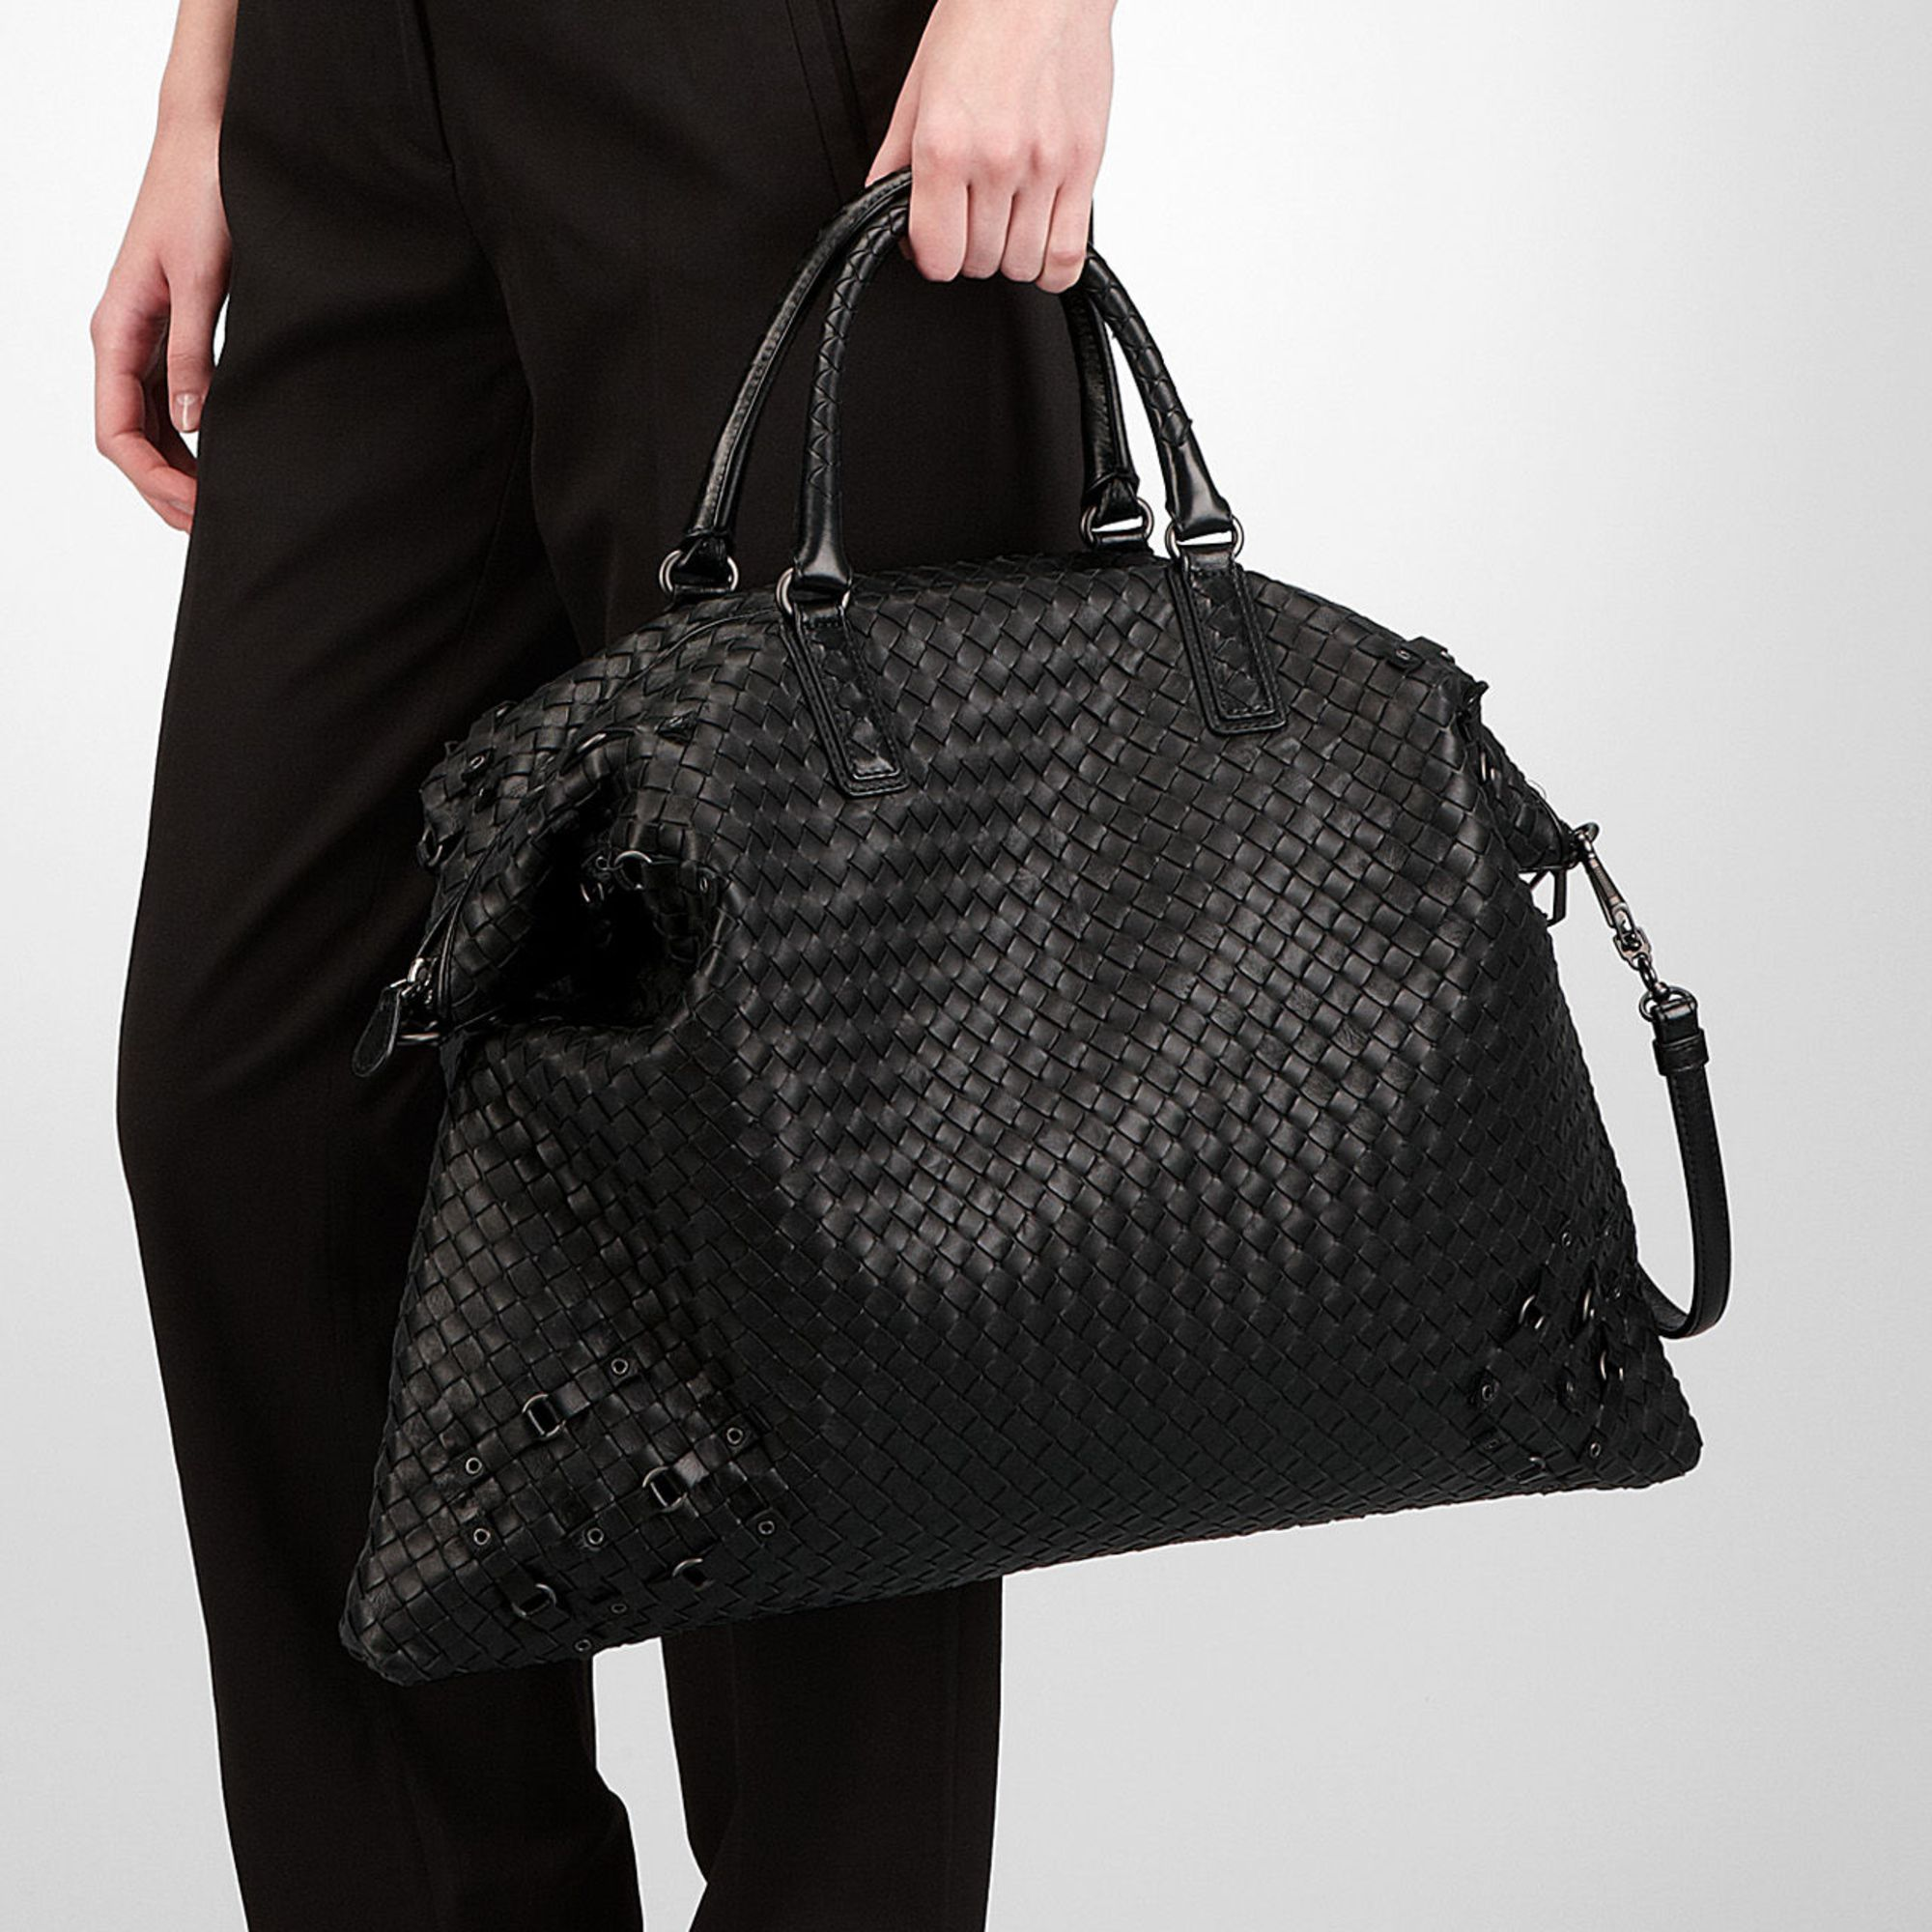 37c8b585a7 Bottega Veneta Nero Intrecciato Nappa Circle Convertible Bag in ...